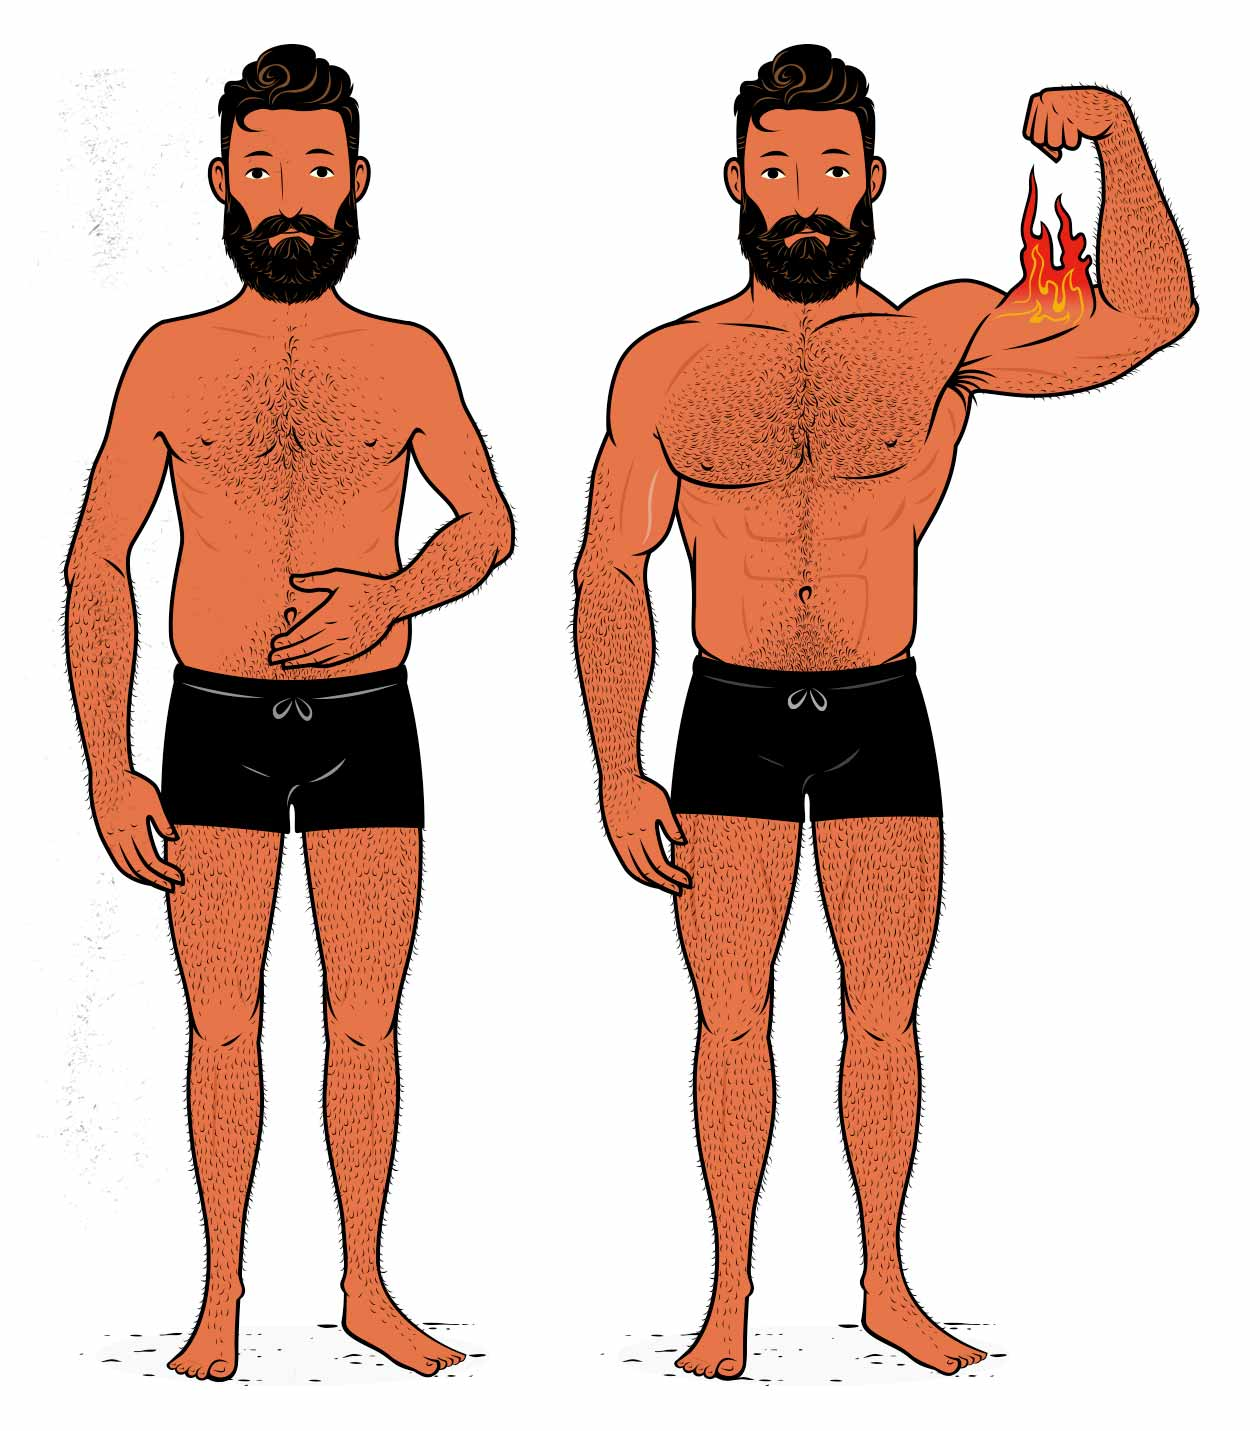 Illustration of a skinny fat guy working our frequently to build muscle as fast as possible.